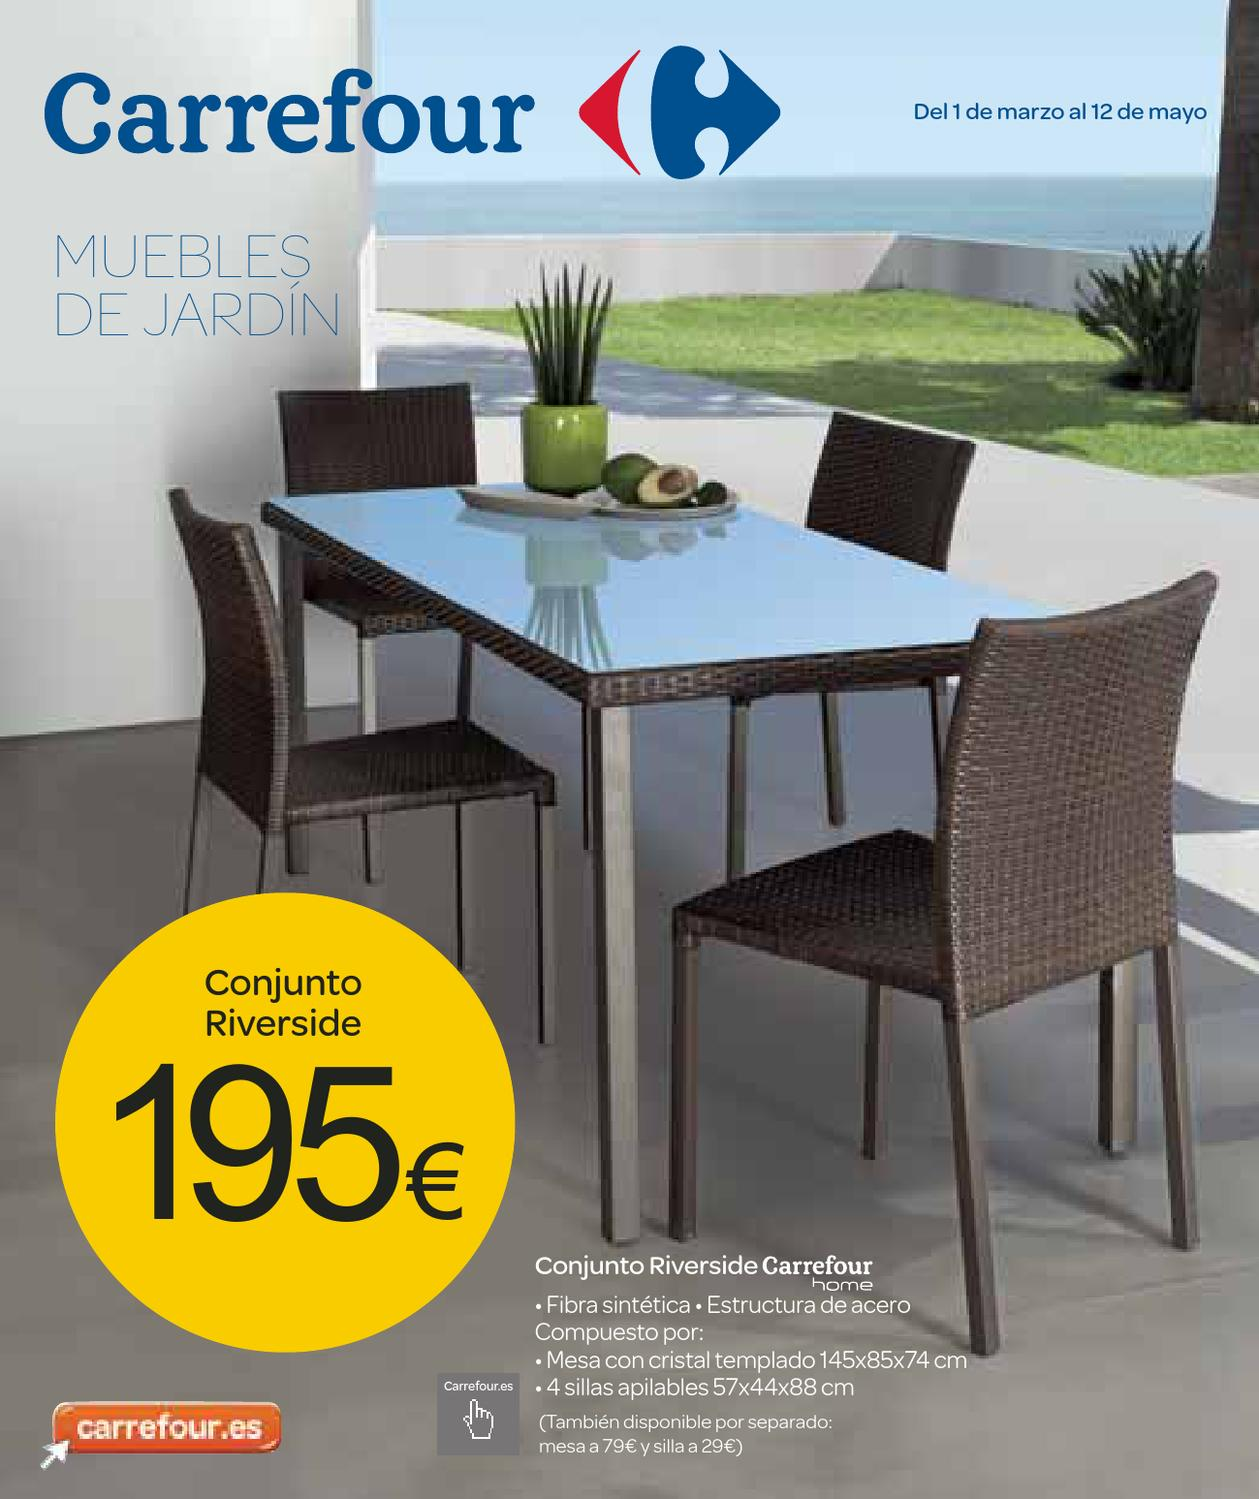 Catalogo de muebles de jardin carrefour by milyuncatalogos for Muebles jardin carrefour